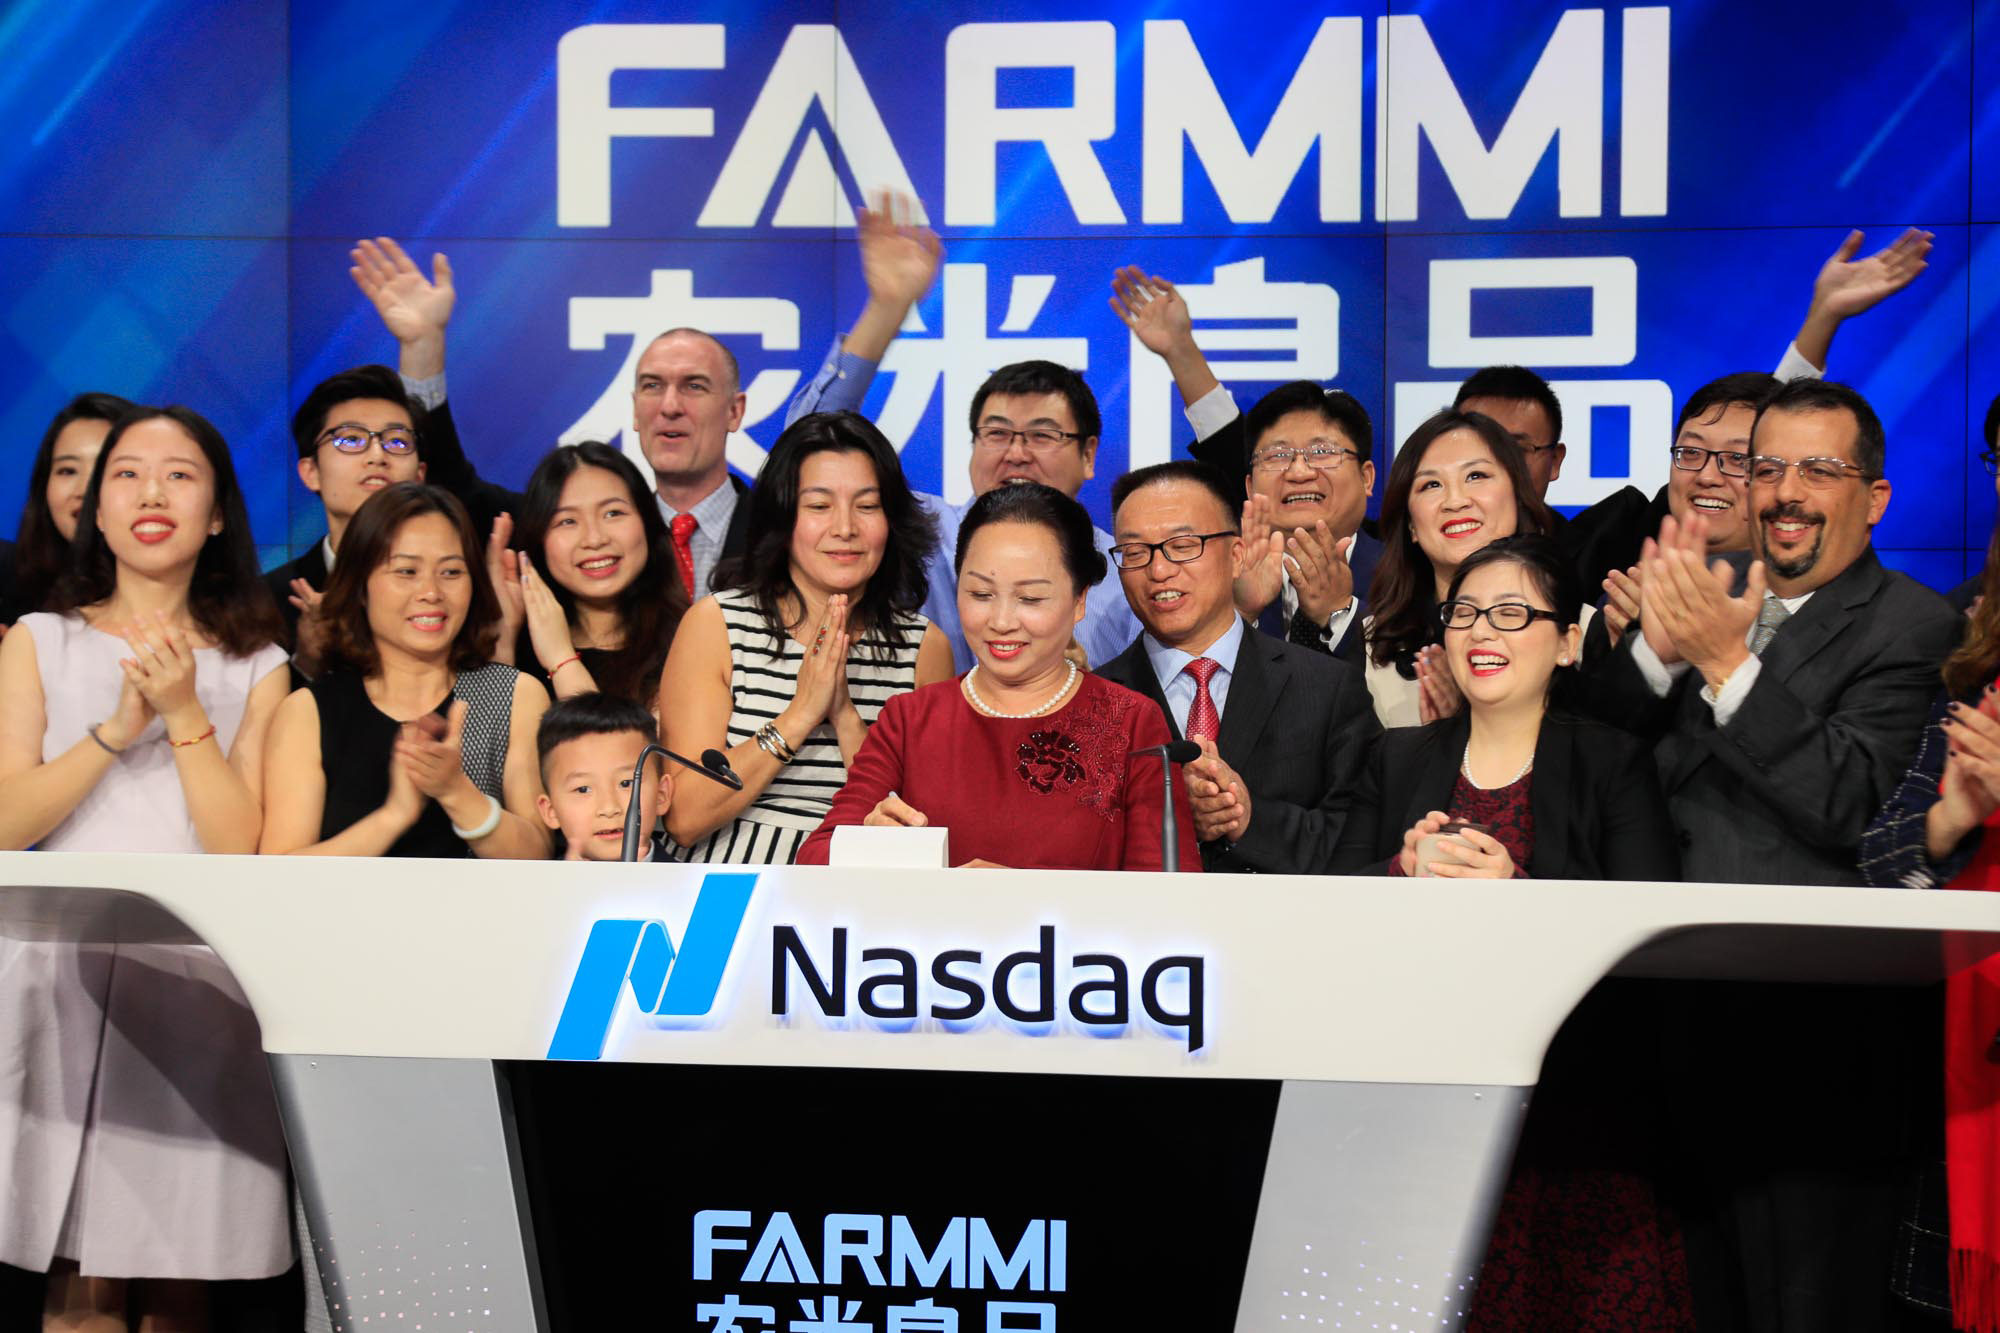 Farmmi (FAMI) Stock Crosses 50 cents in Early Trade: Now What?